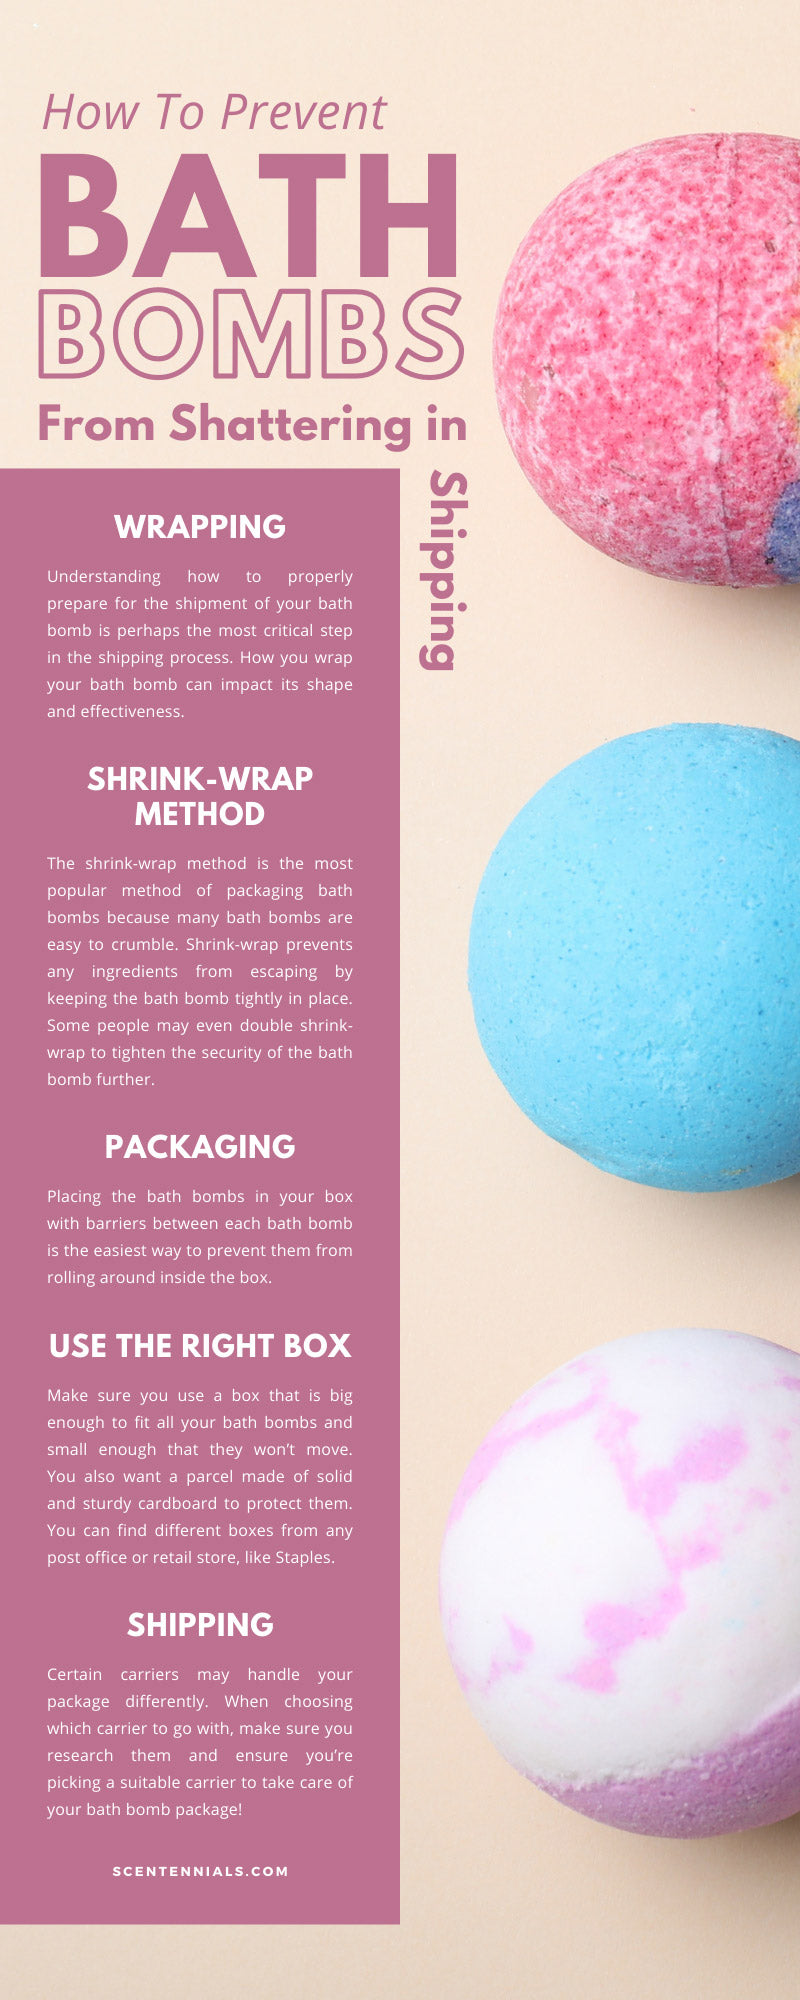 How To Prevent Bath Bombs From Shattering in Shipment